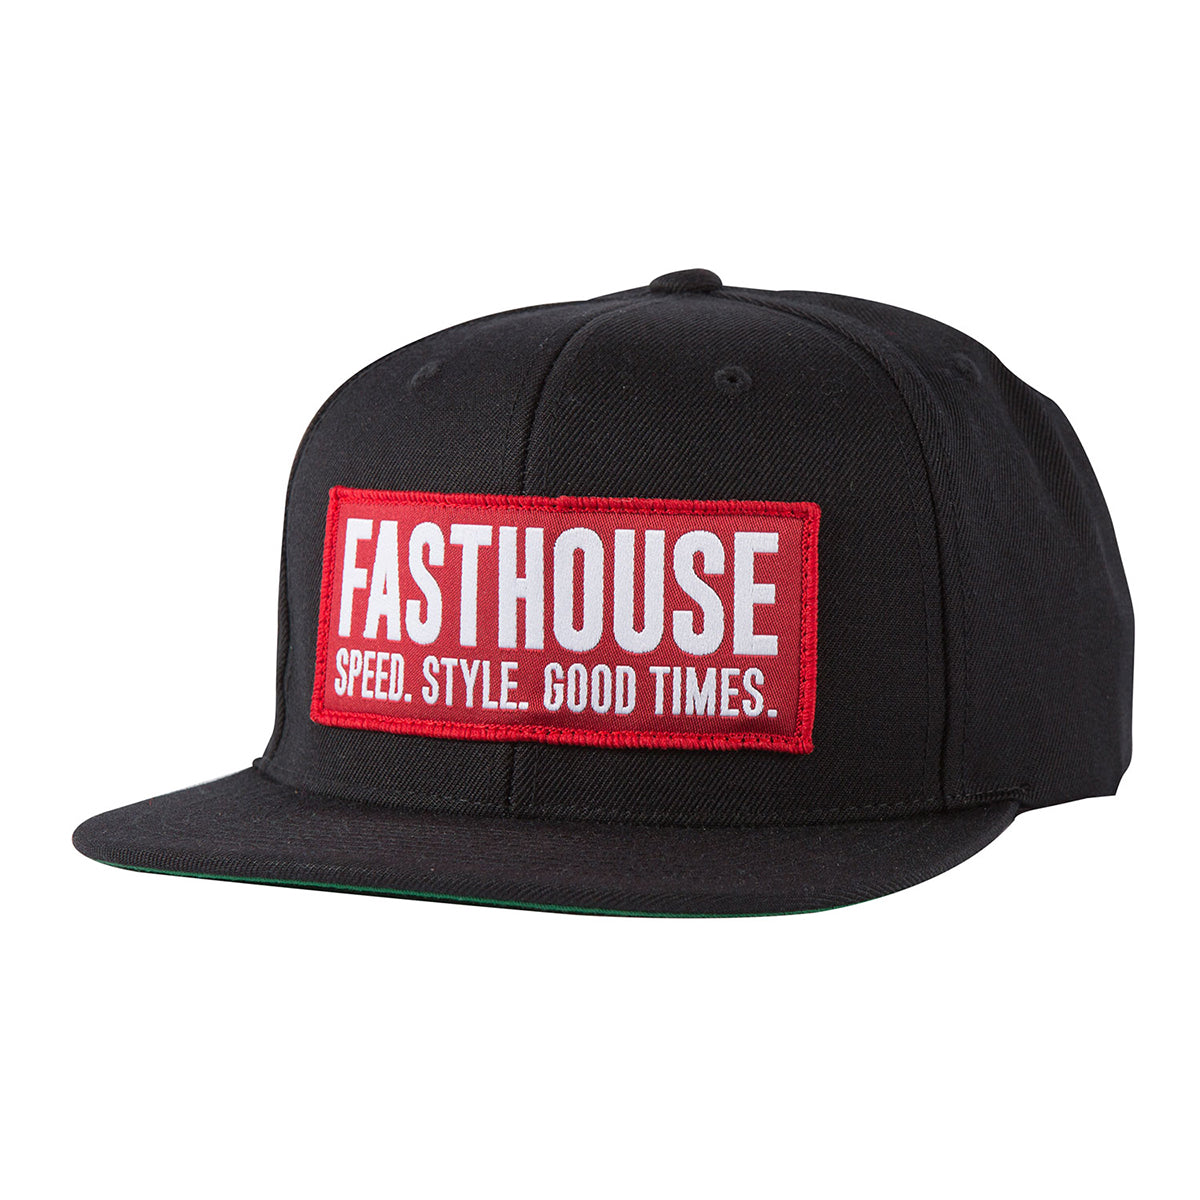 Fasthouse - Blockhouse Hat - Black/Red